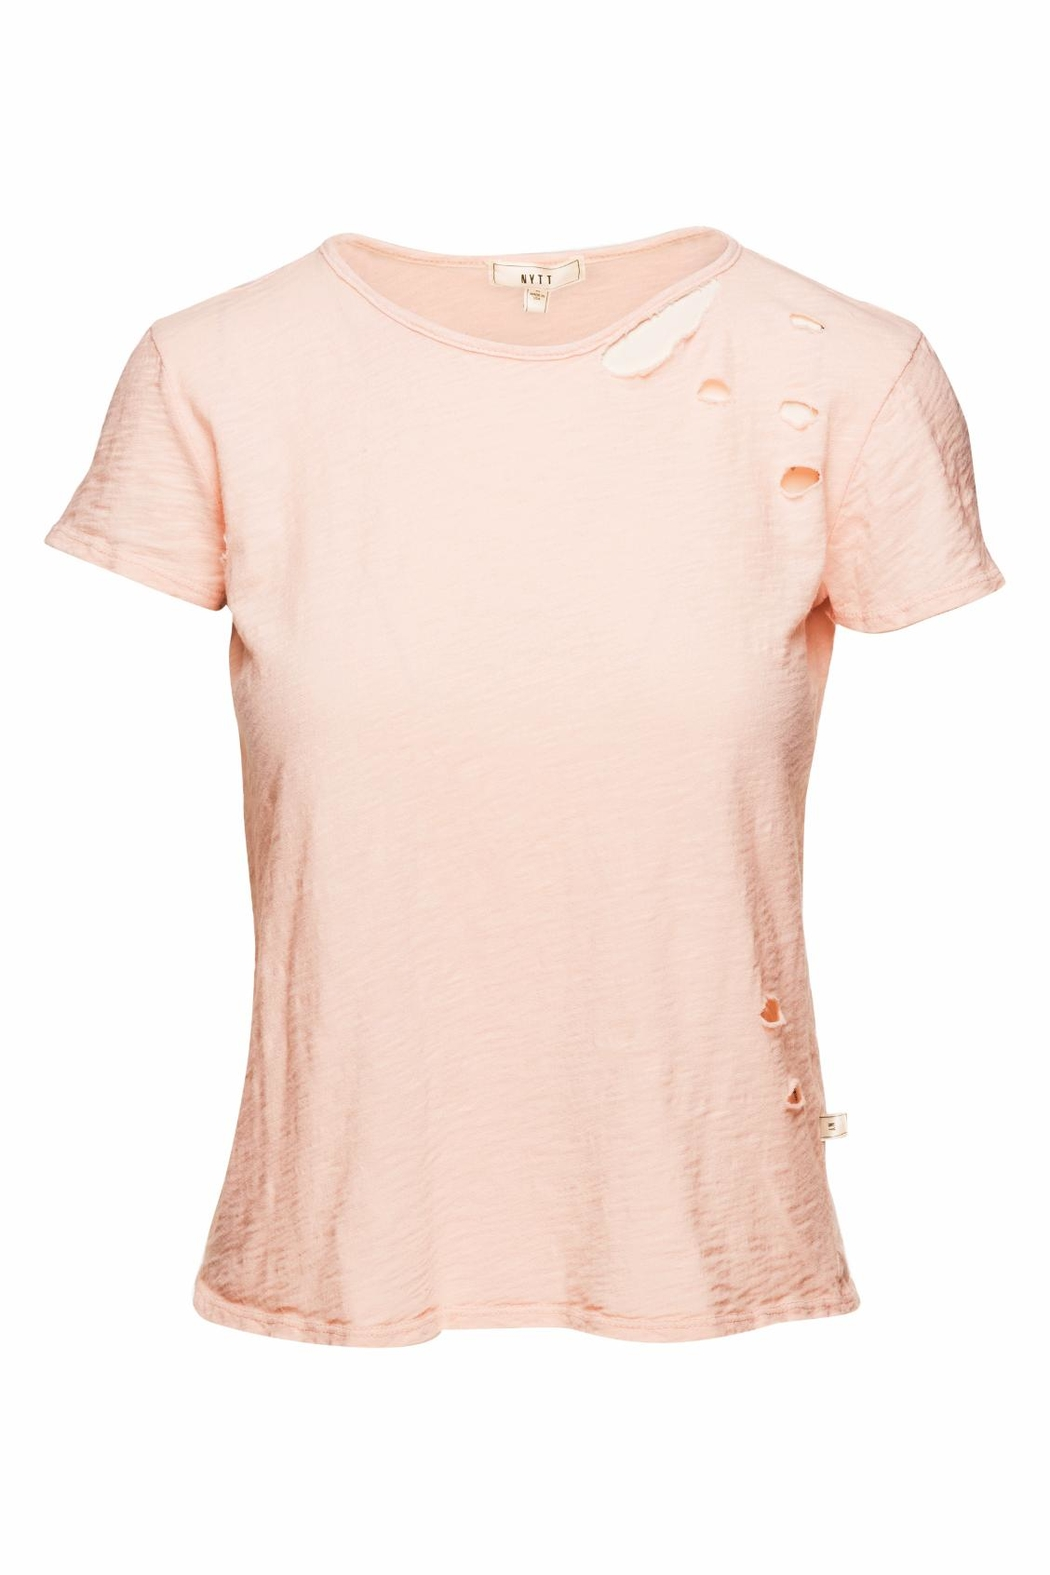 NYTT Blush Distressed Tee - Main Image